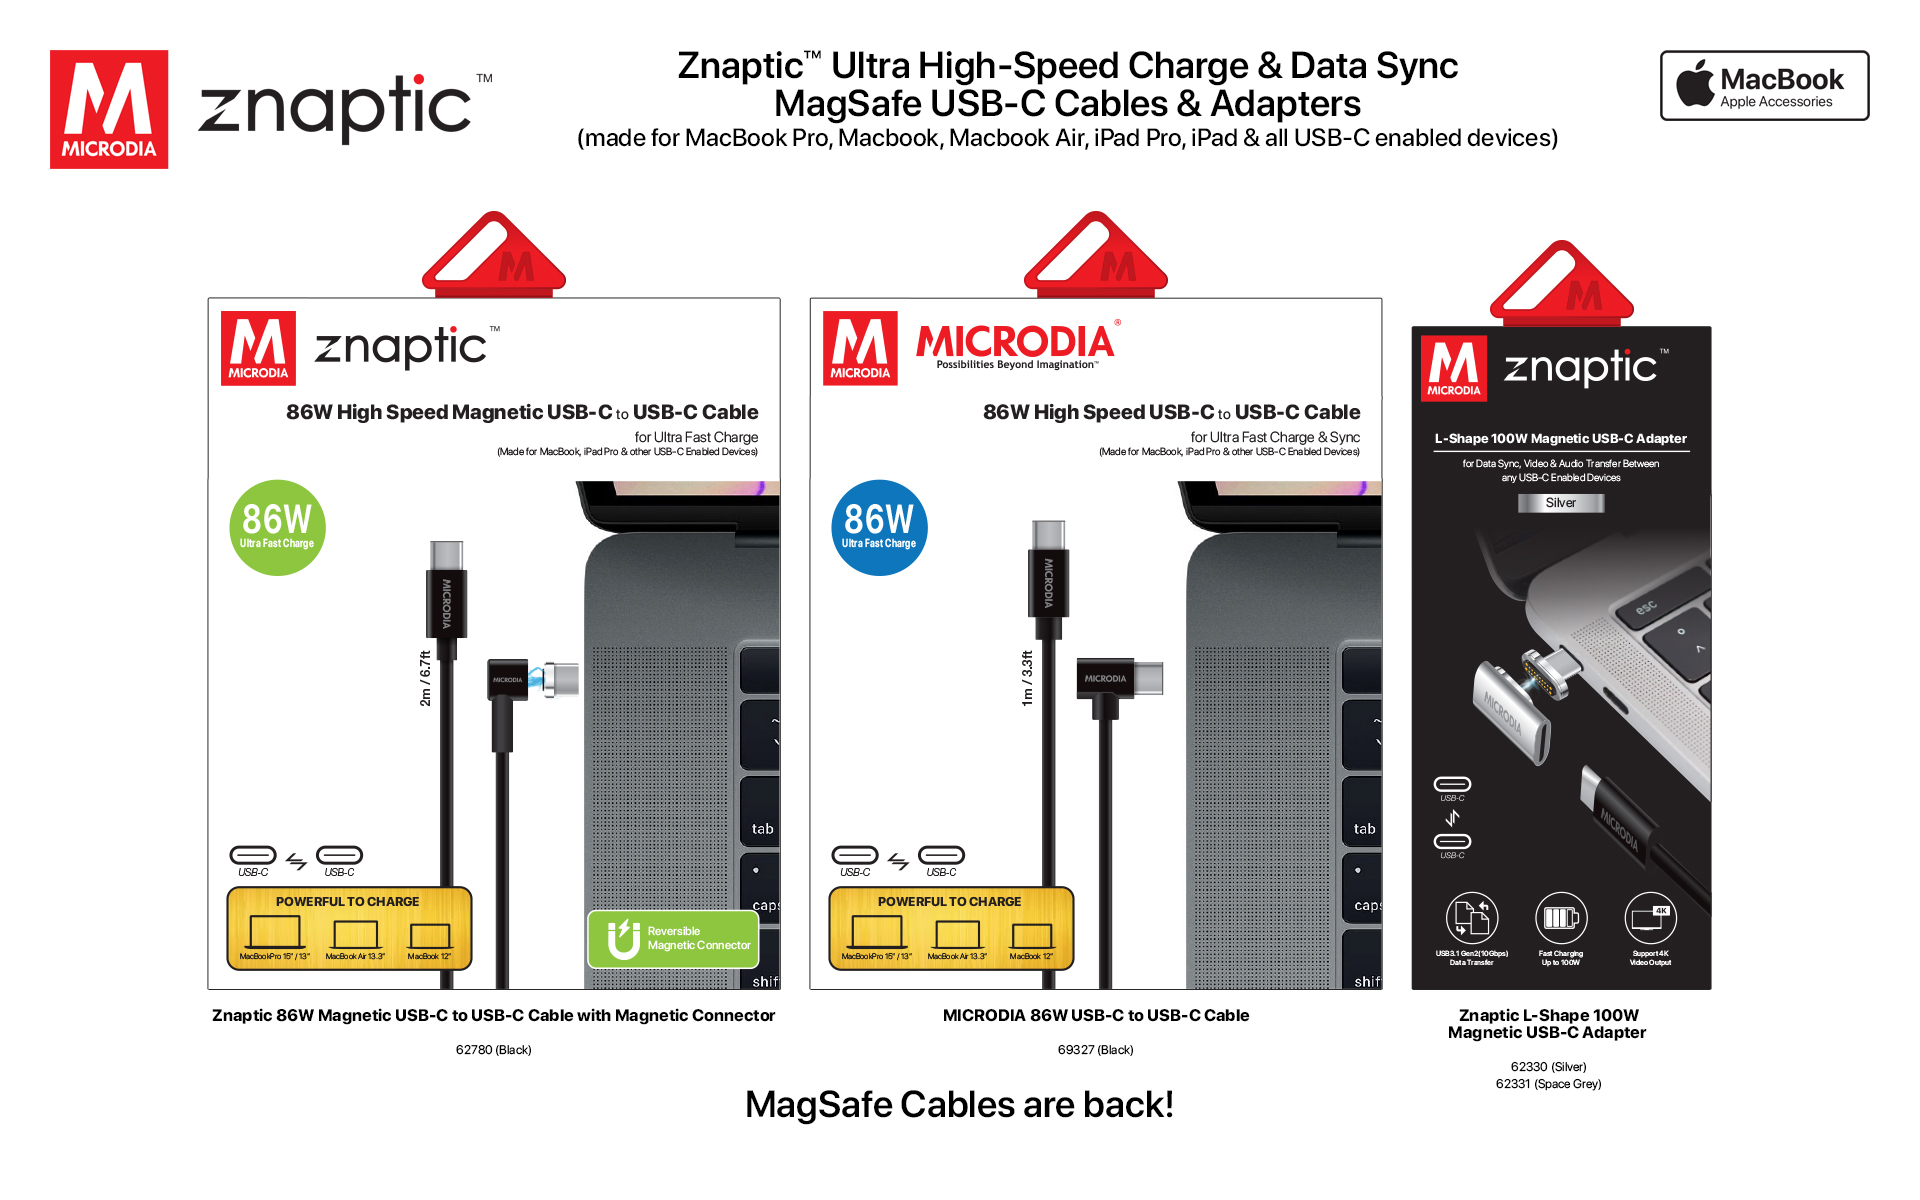 3. Znaptic Magsafe Cable